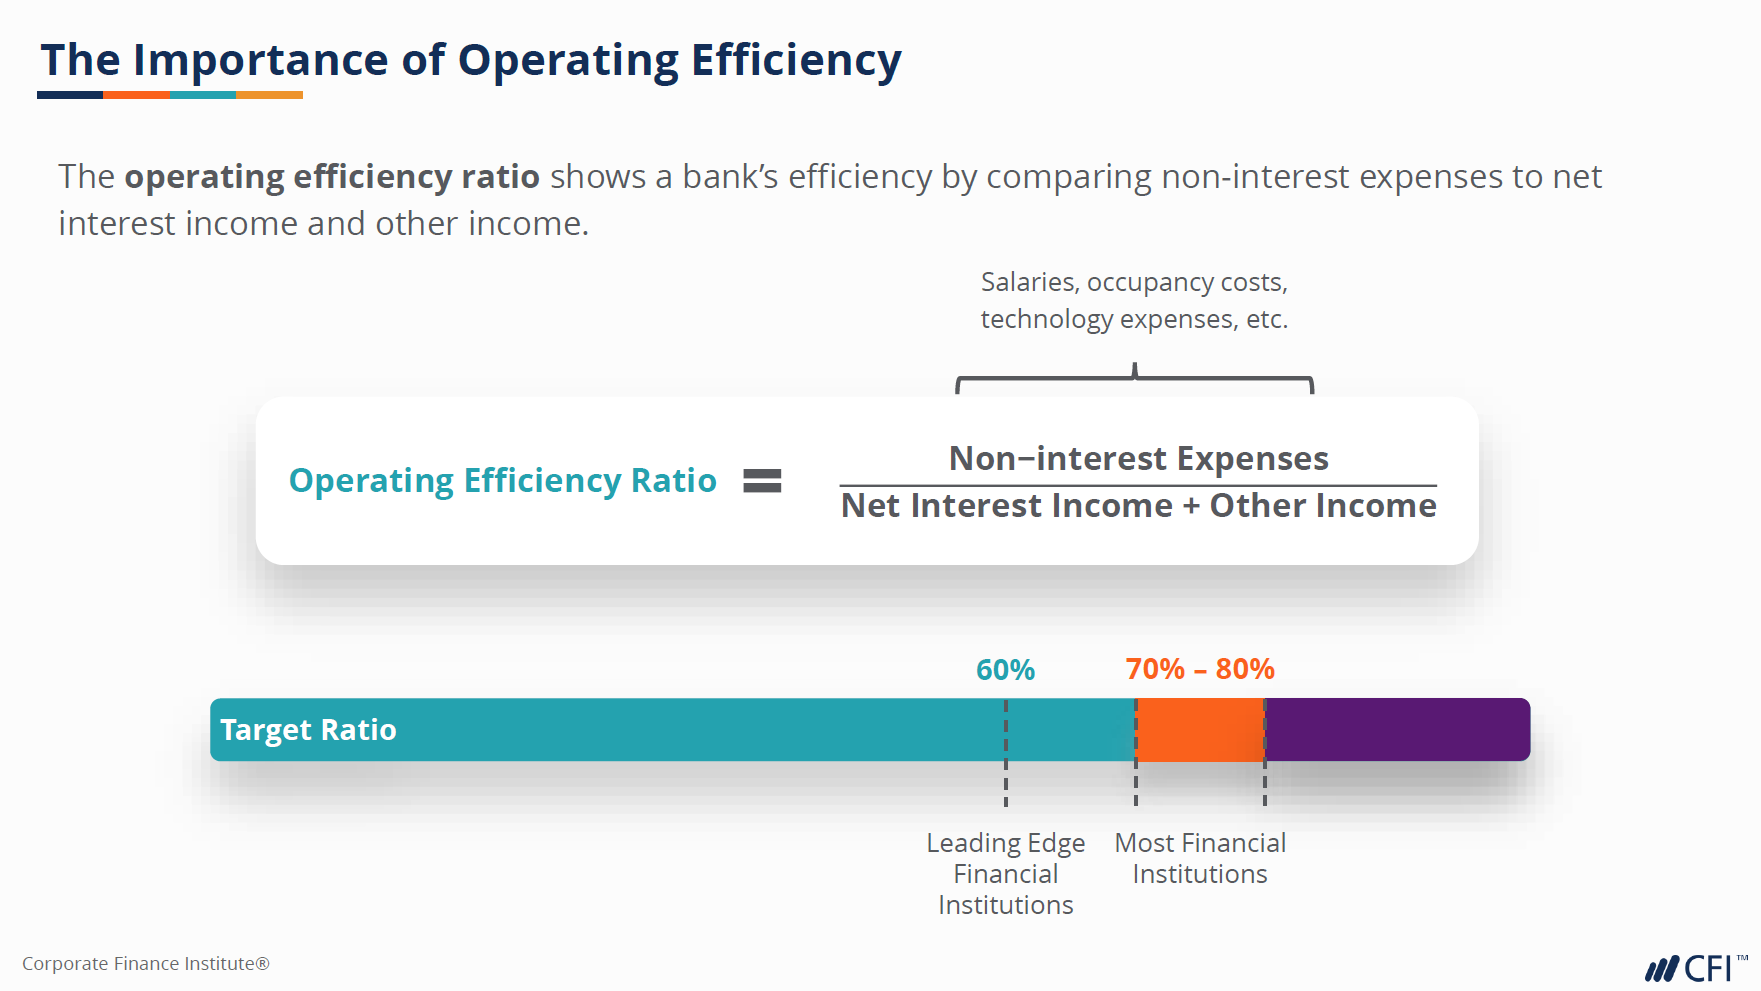 Operating efficiency ratio